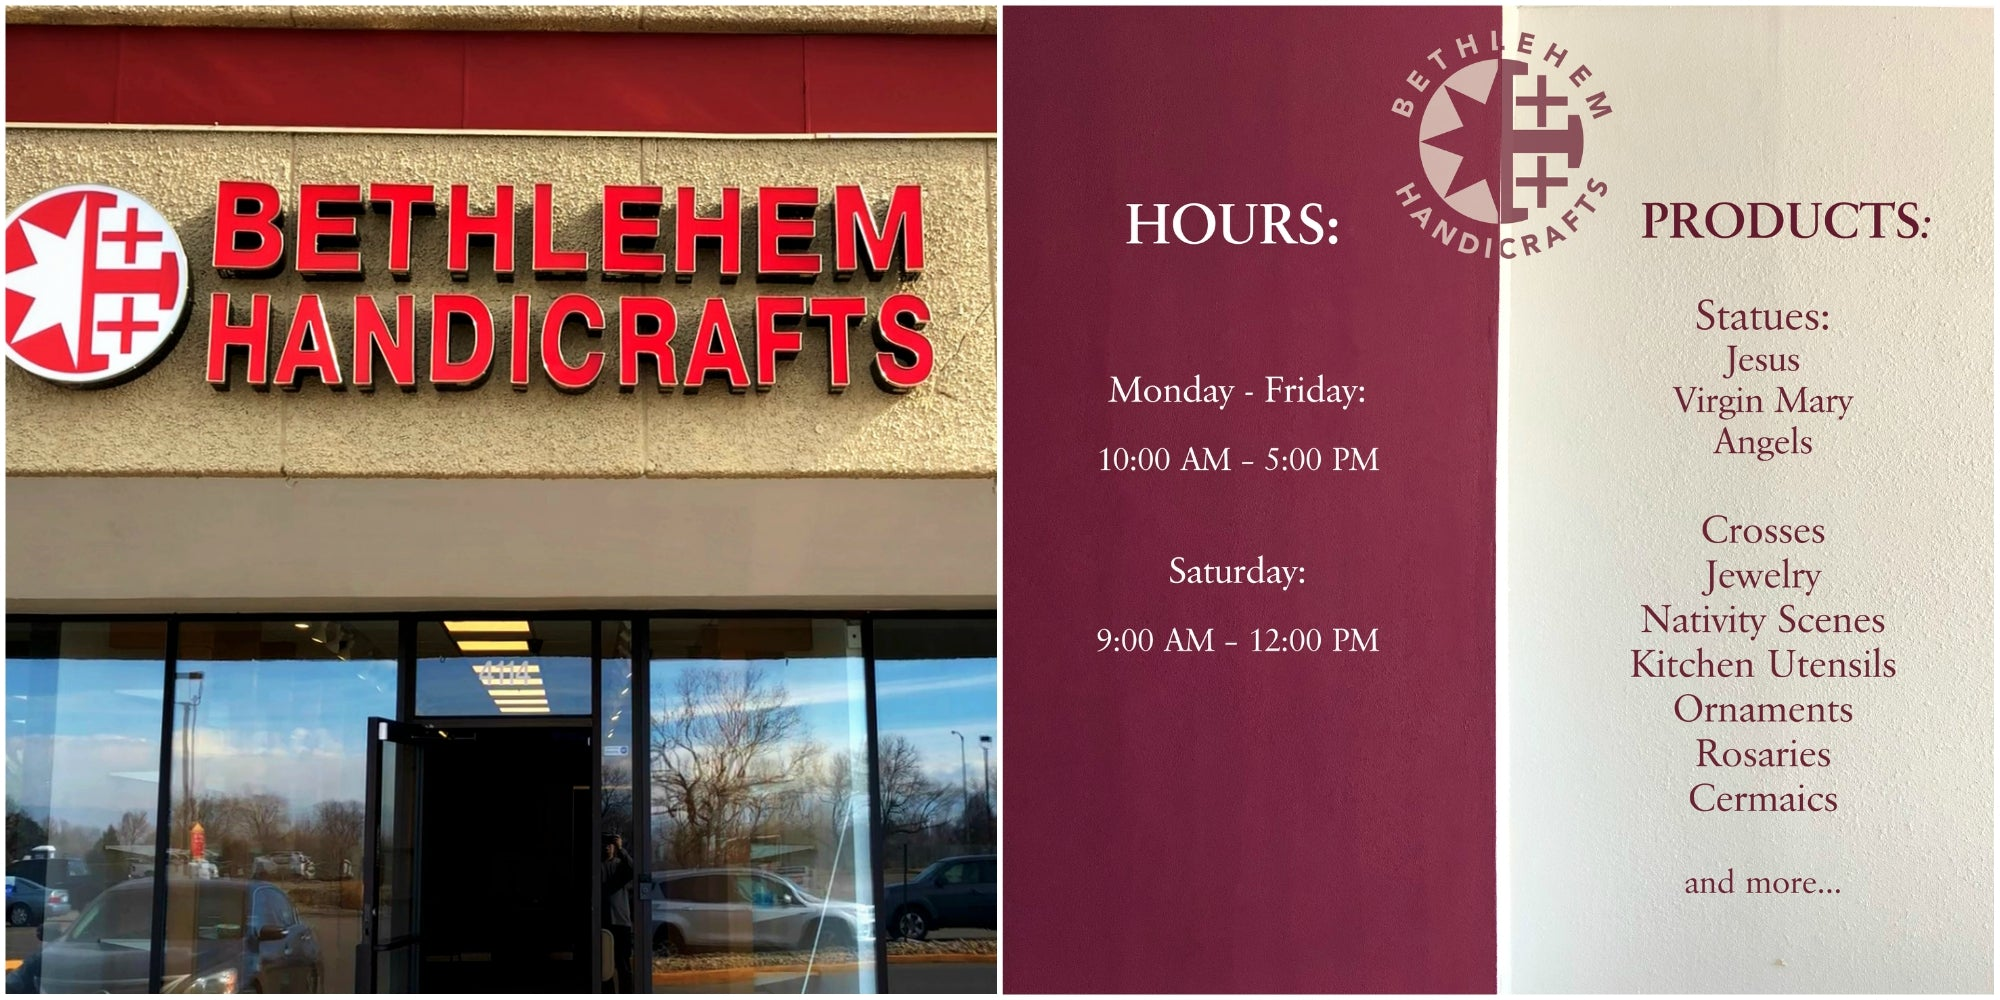 Our storefront and working hours